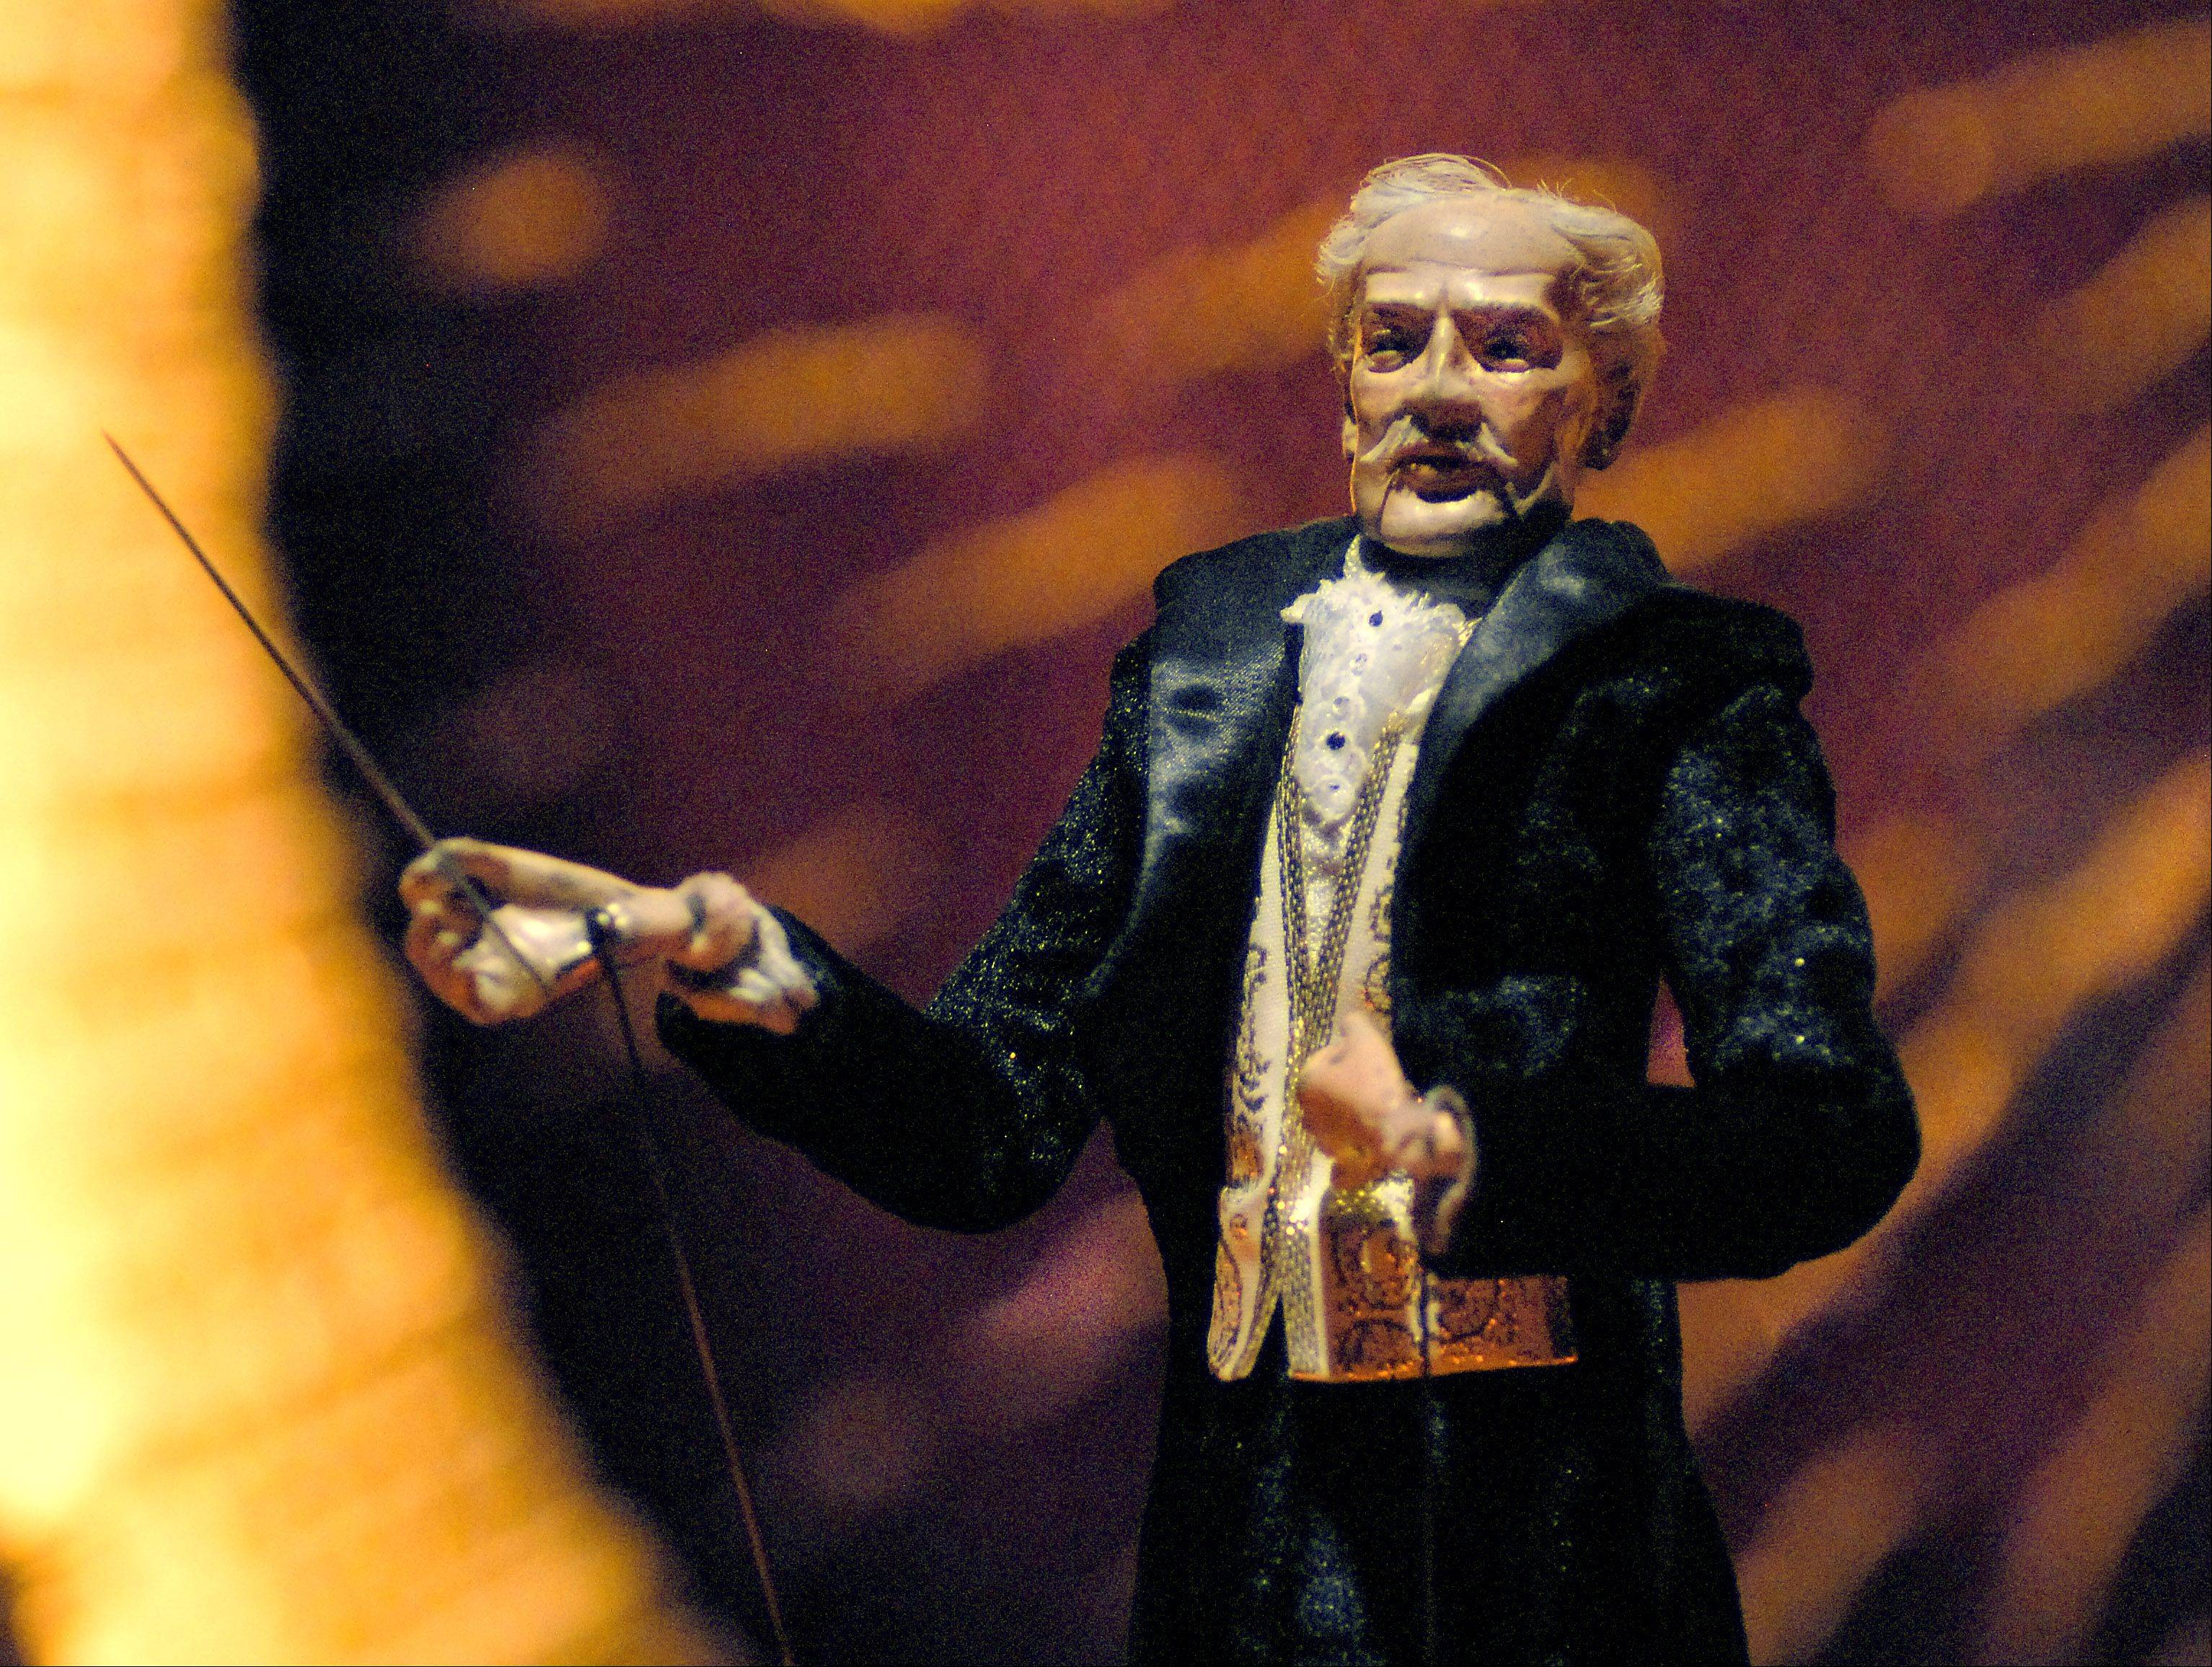 Maestro Tosci, based on conductor Arturo Toscanini, leads the Opera in Focus orchestra.